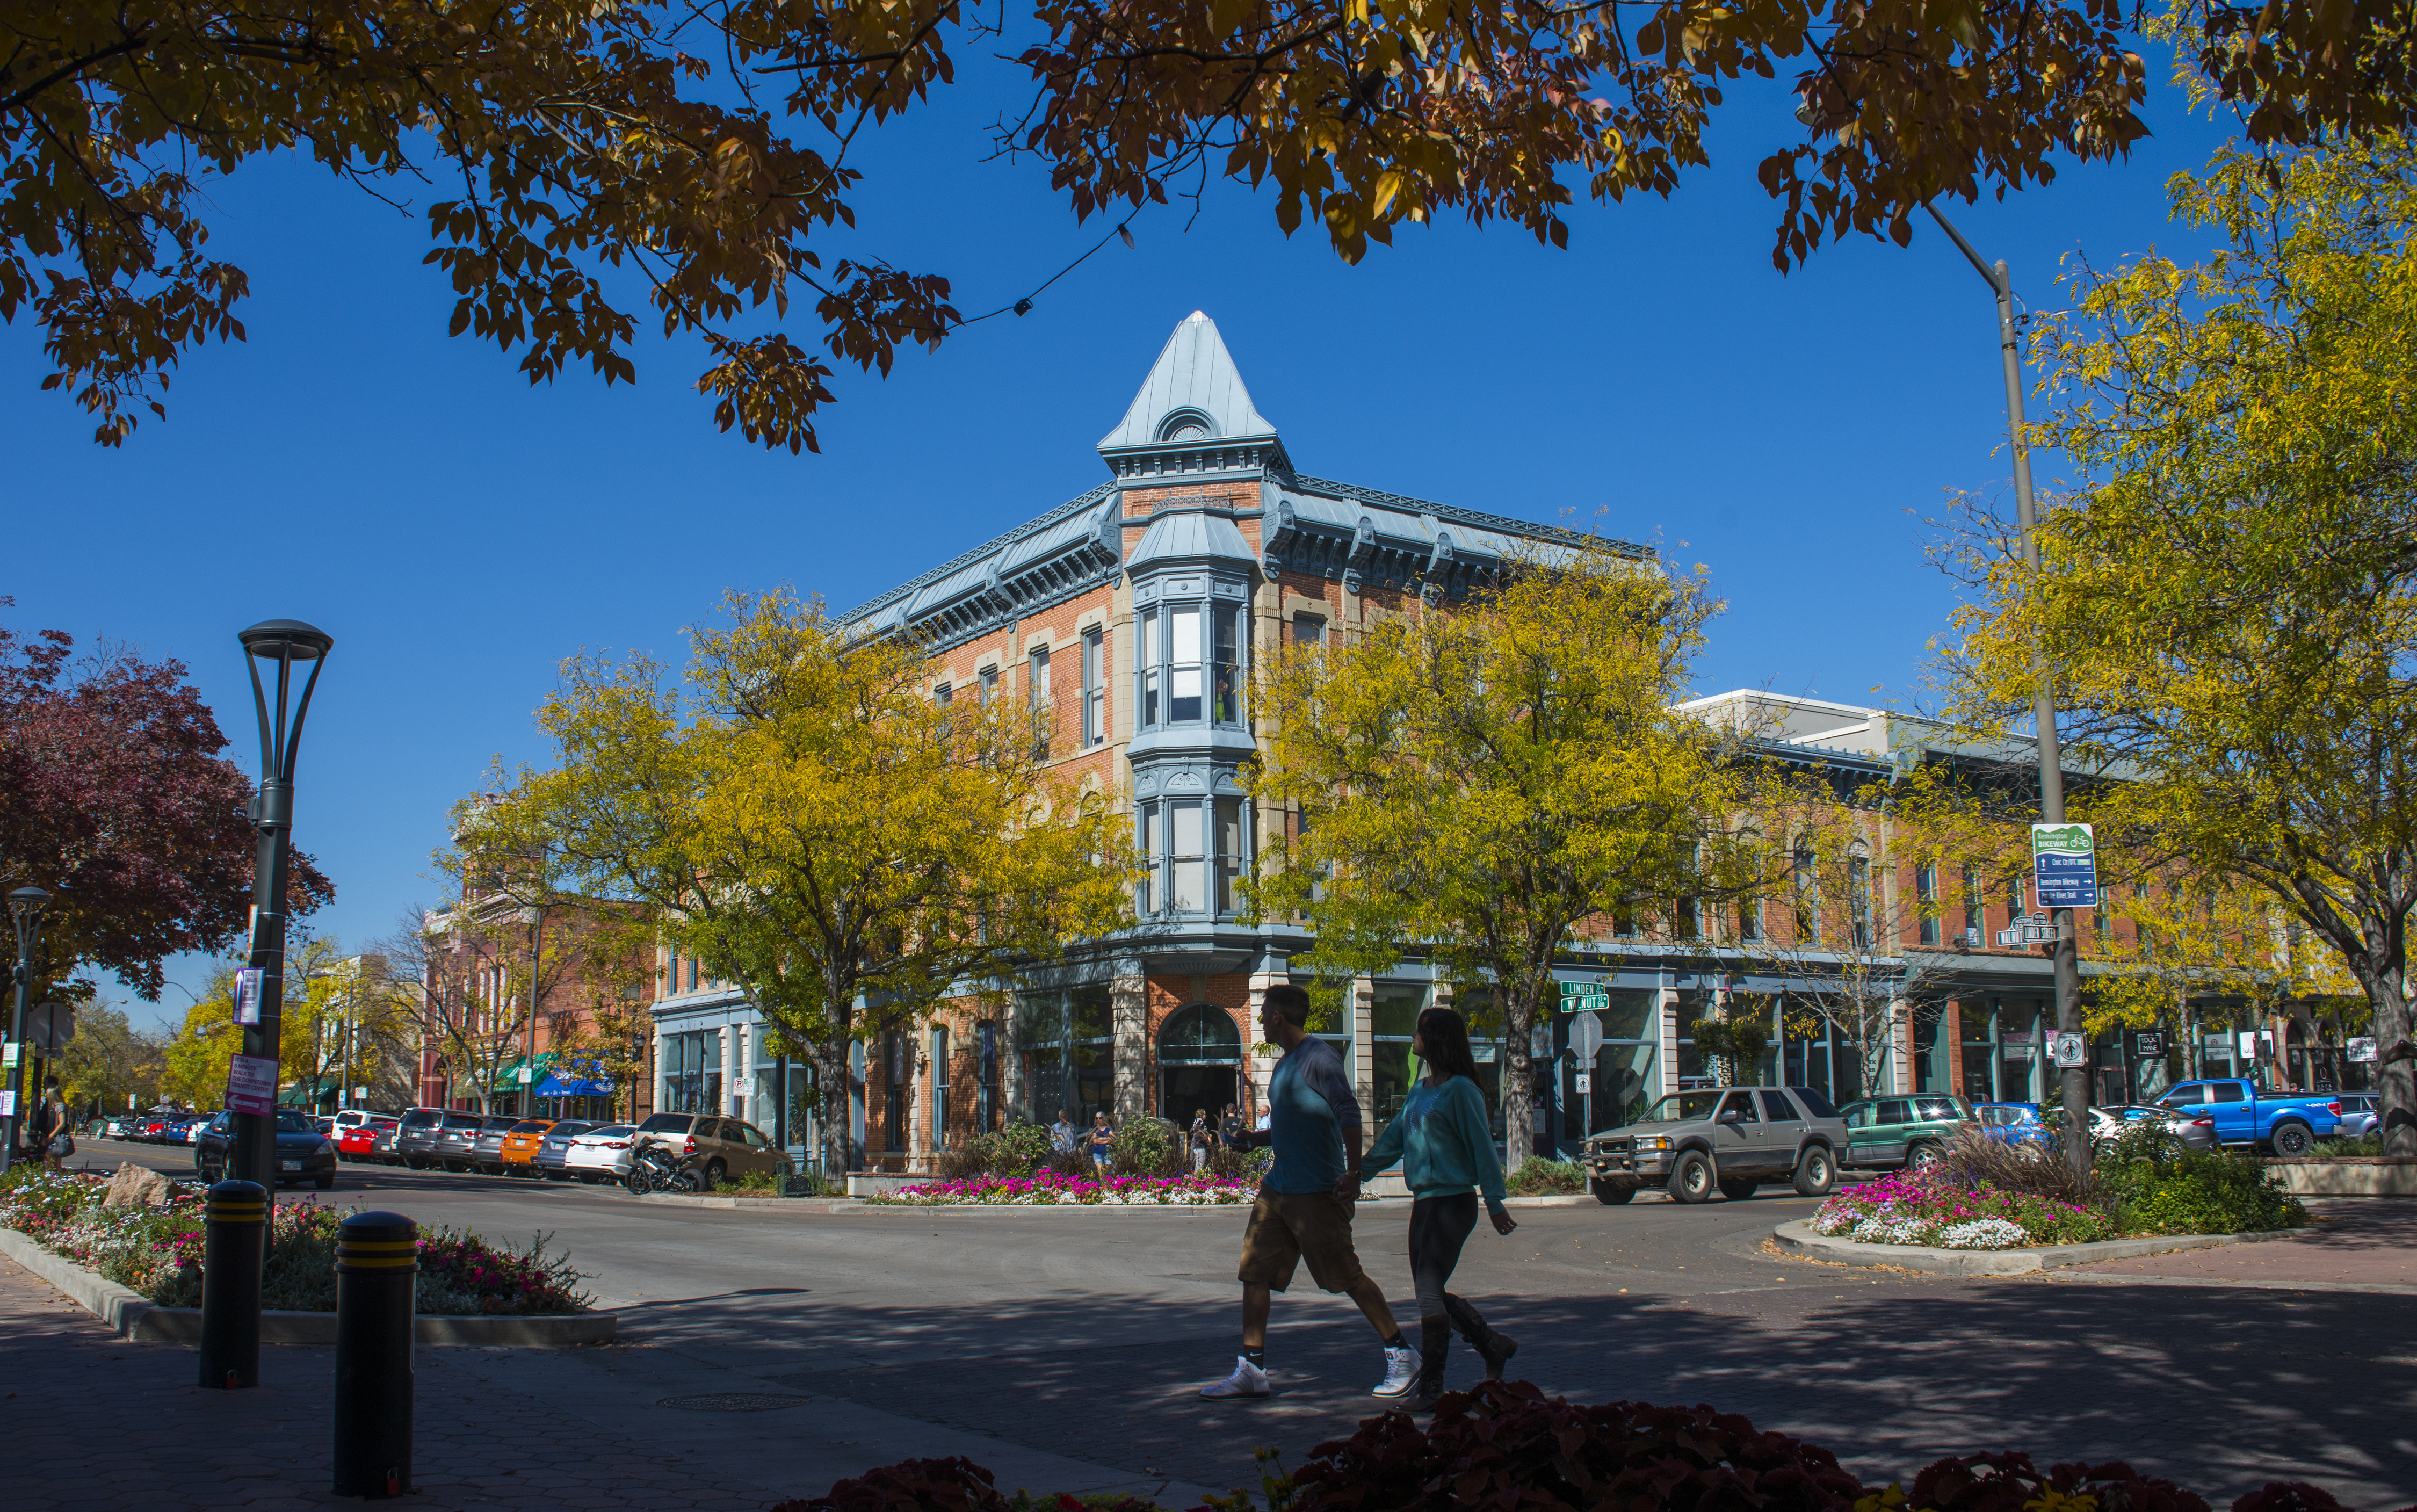 Fort Collins' historic Old Town district in the fall, with people walking along the street.